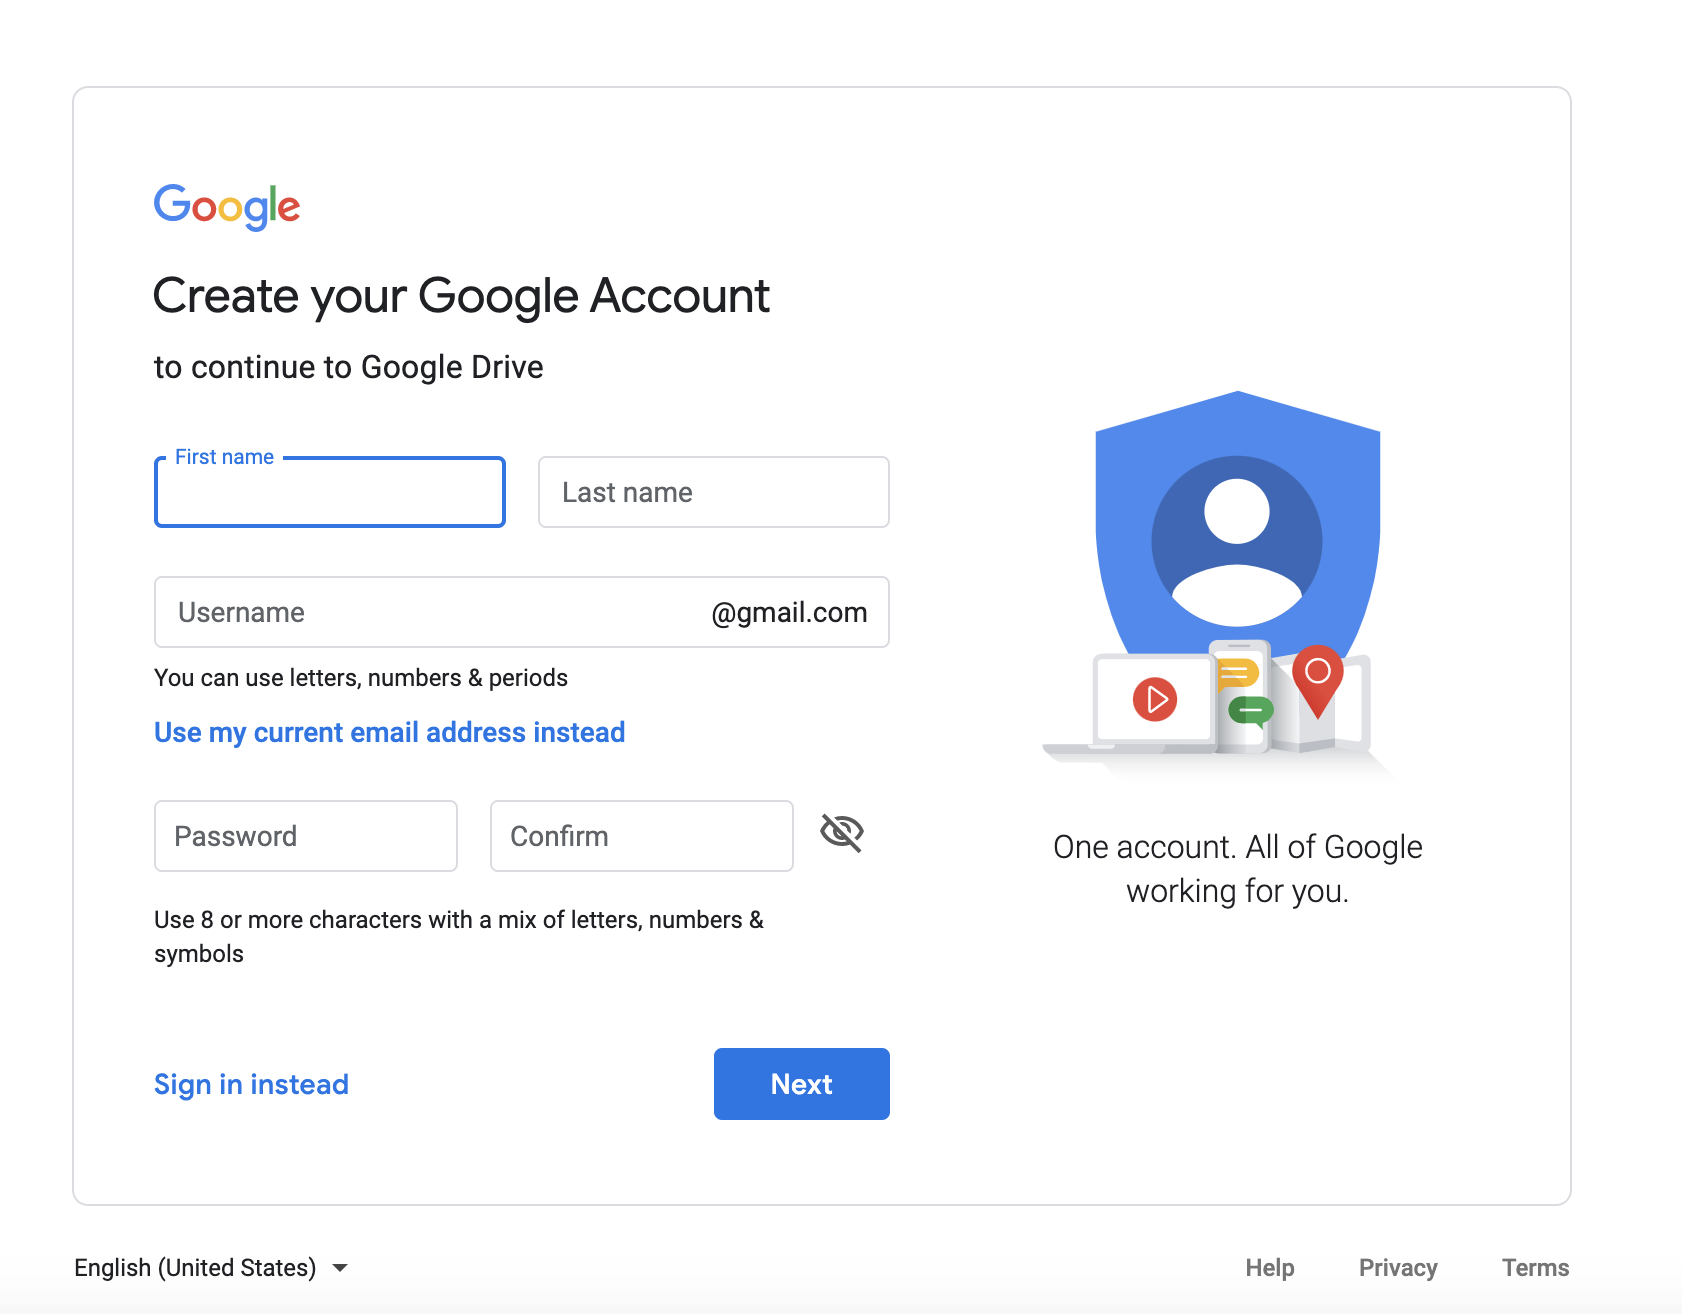 Google Drive Account Creation Page